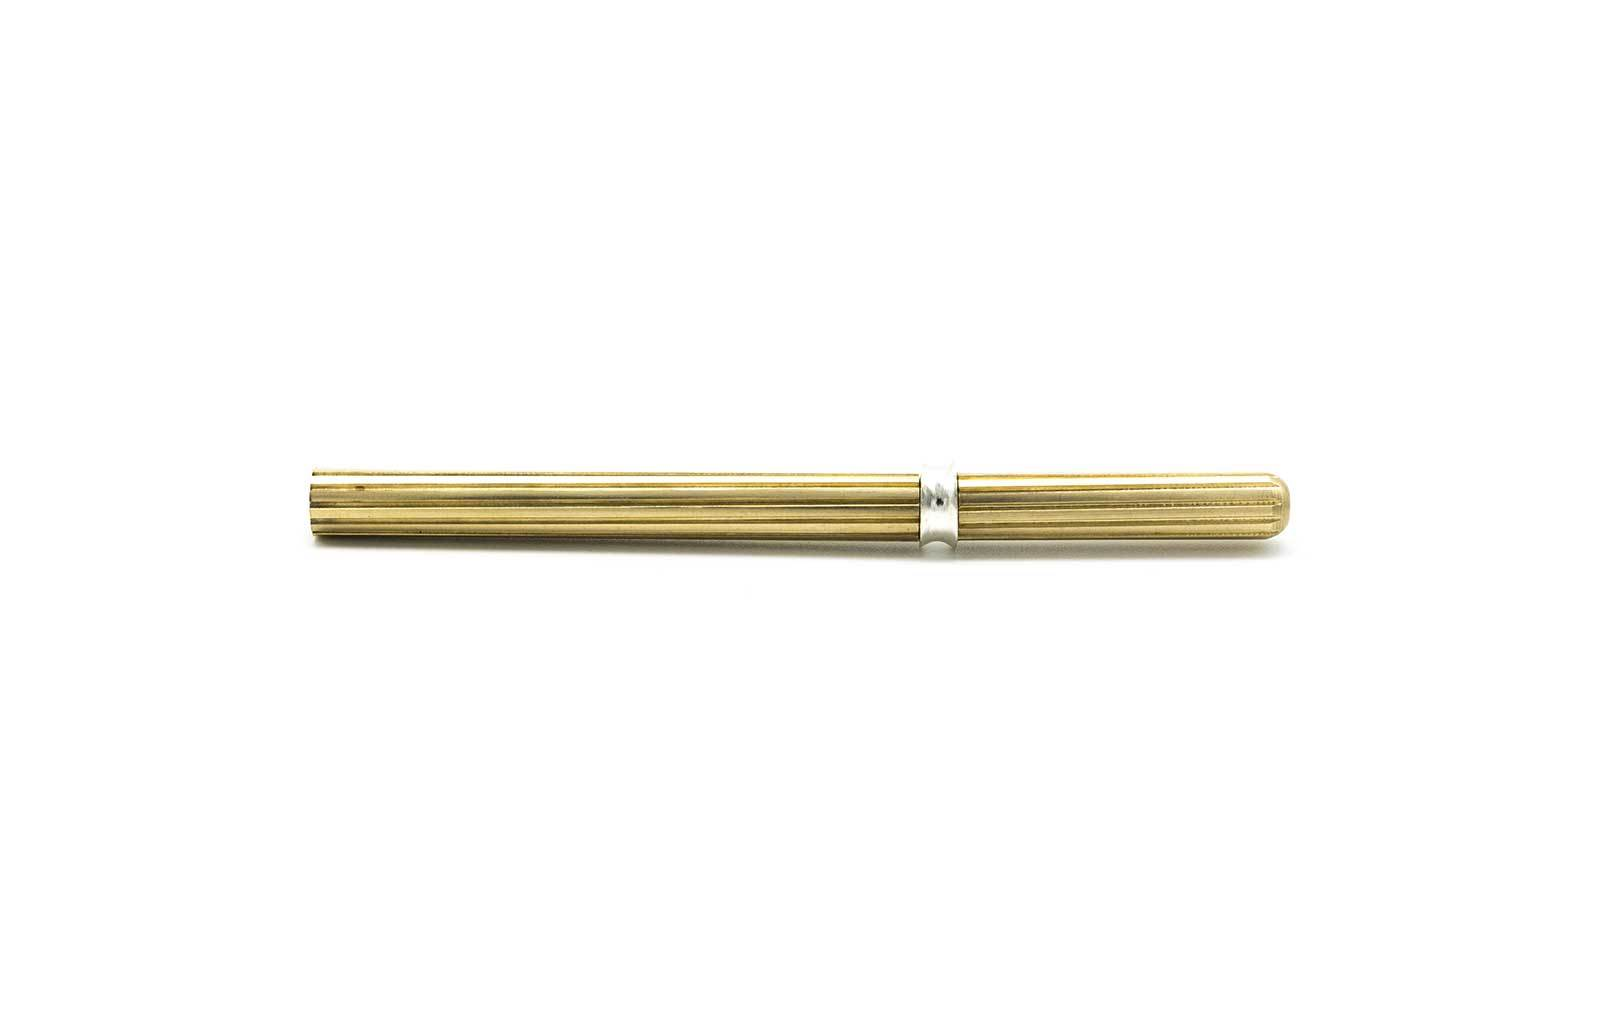 Art Deco Fluted One-Hitter Pipe | Luxury Flower/Herb Smoking Experience - Greige